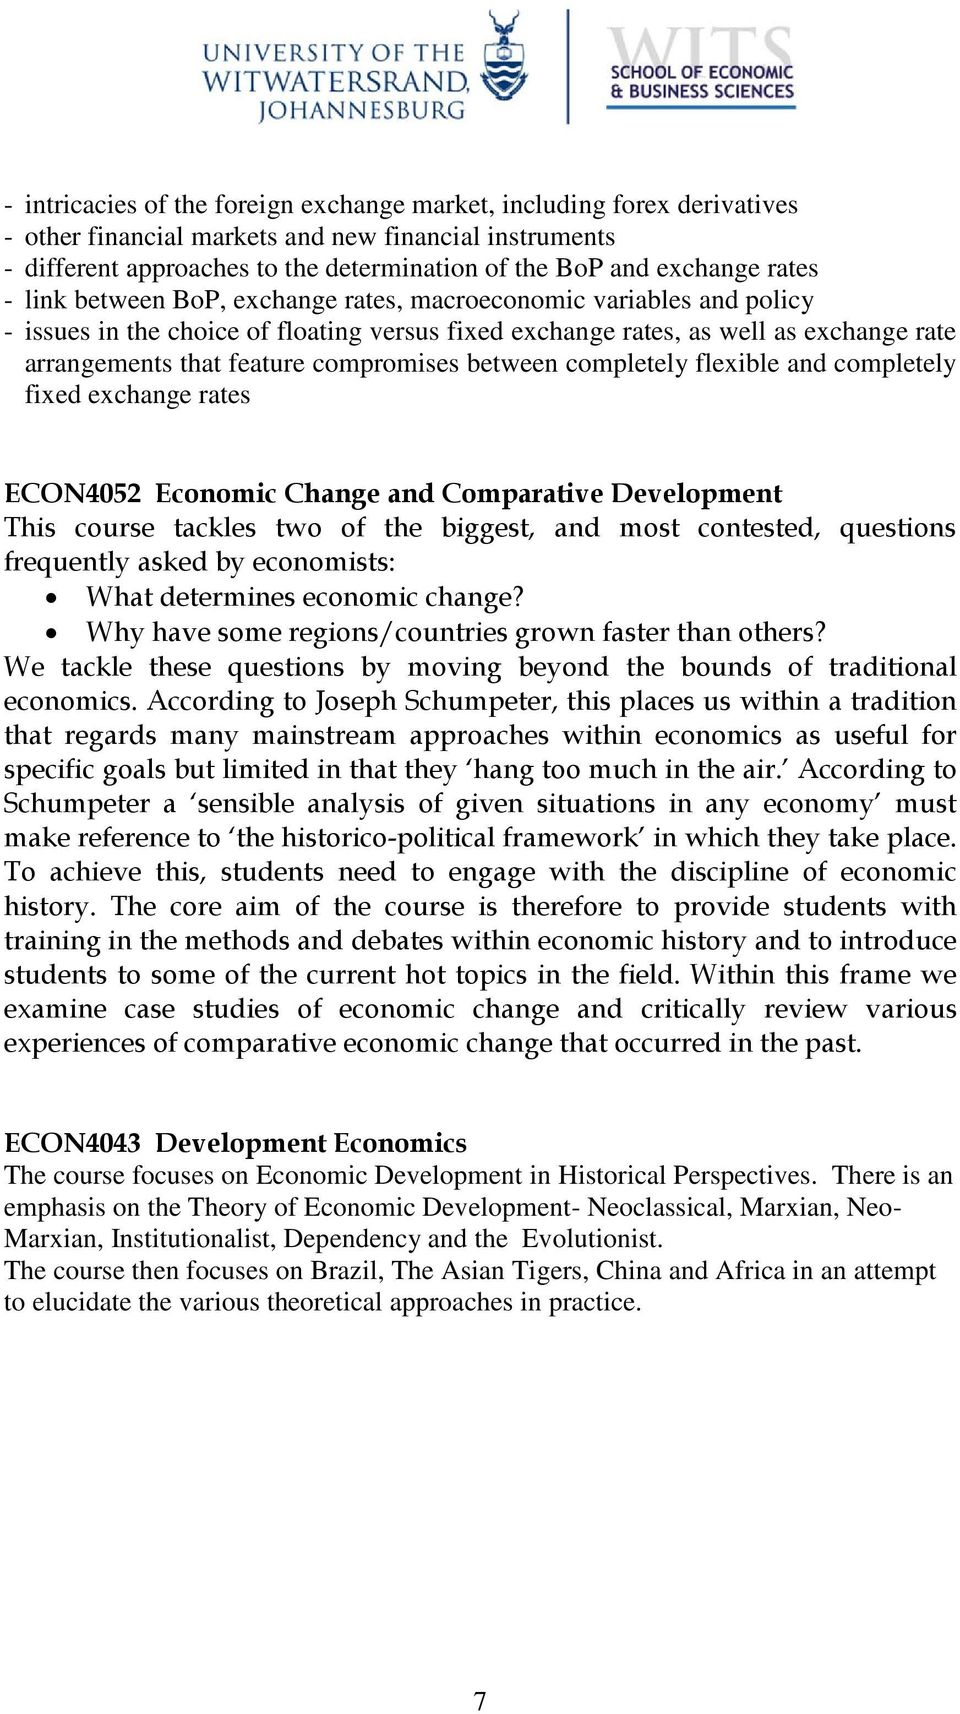 managerial economics term paper topics